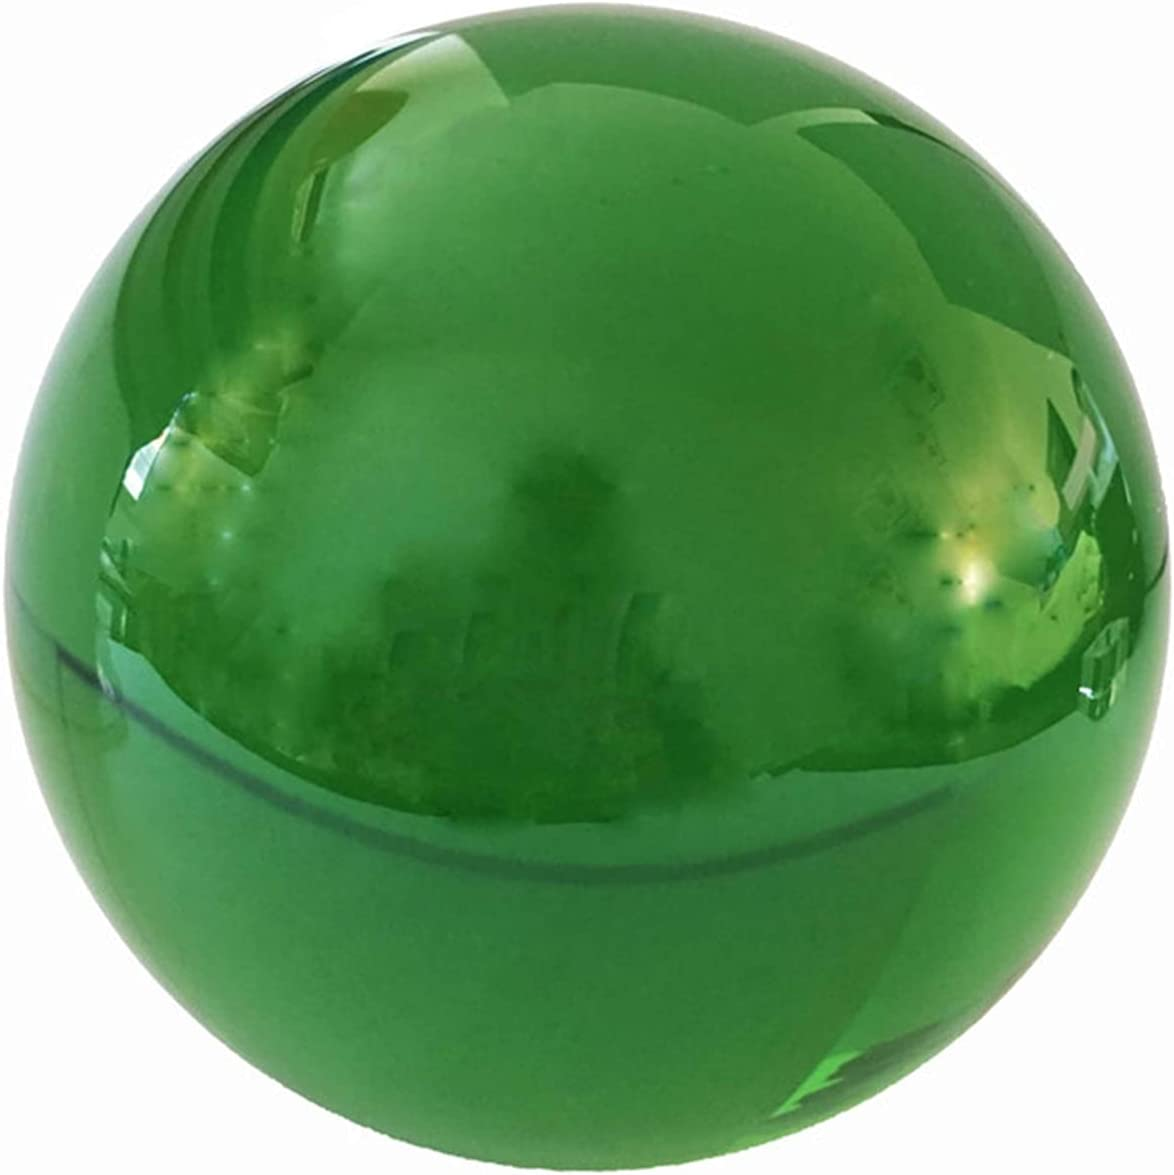 Brand new ZSZJ Figurines 30mm 40mm Bombing free shipping Crystal Glass Paperweight Balls C